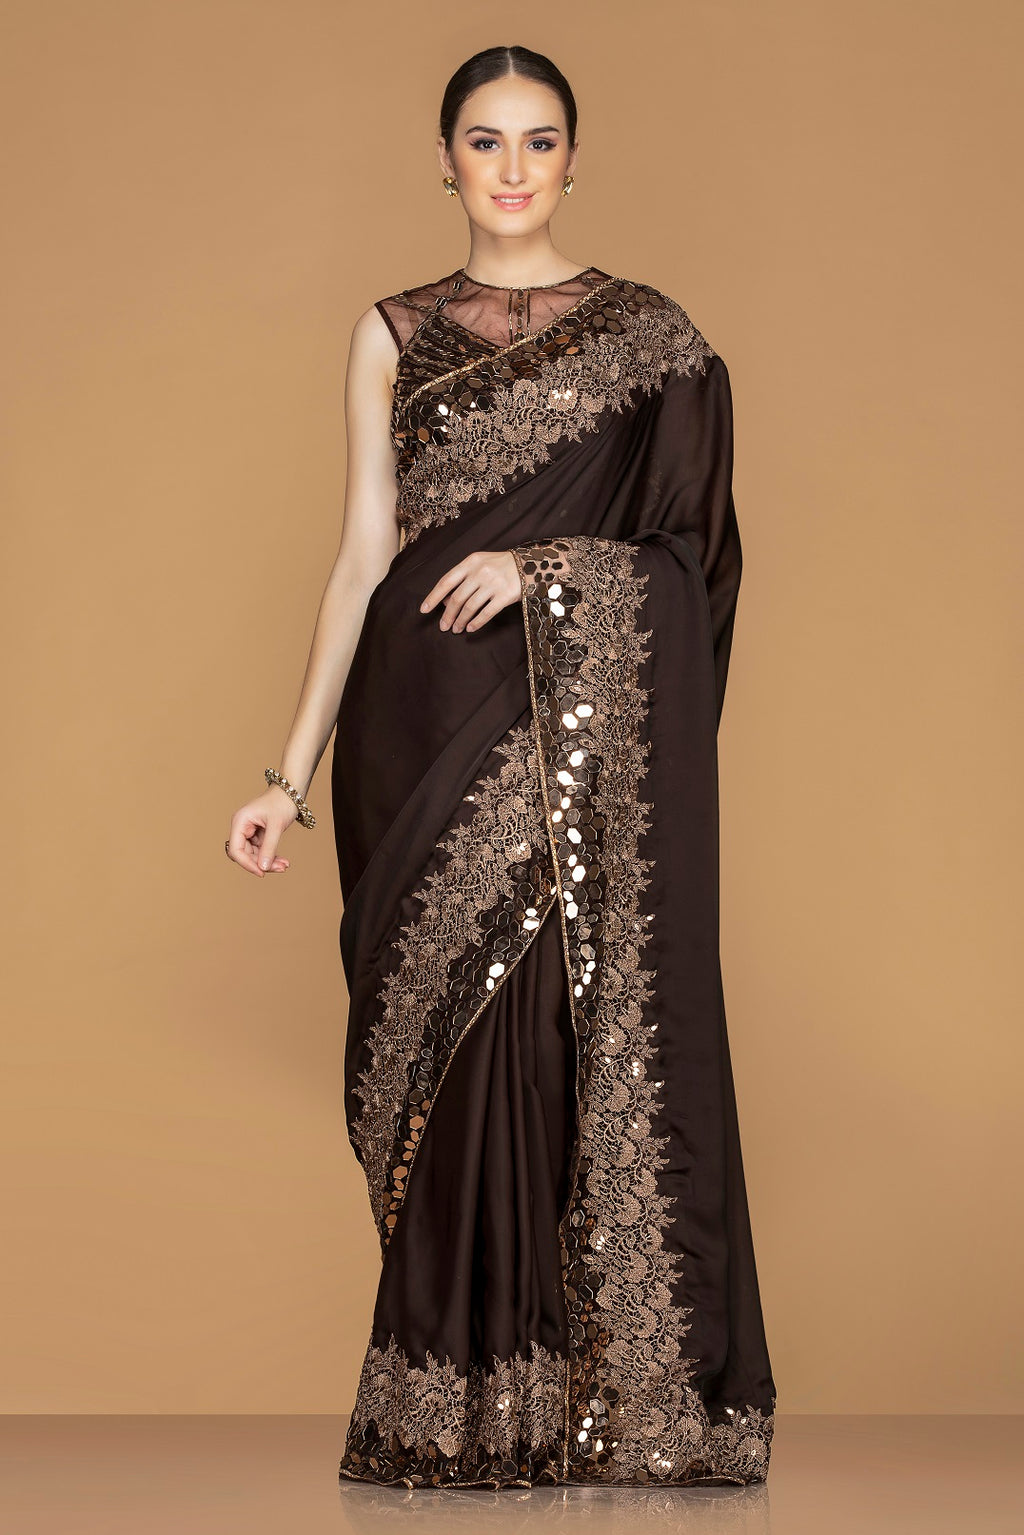 Buy gorgeous dark brown embroidered saree online in USA with embroidered designer saree blouse. Champion ethnic fashion with a splendid collection of designer sarees, embroidered sarees with blouse, weddings sarees from Pure Elegance Indian fashion store in USA.-full view